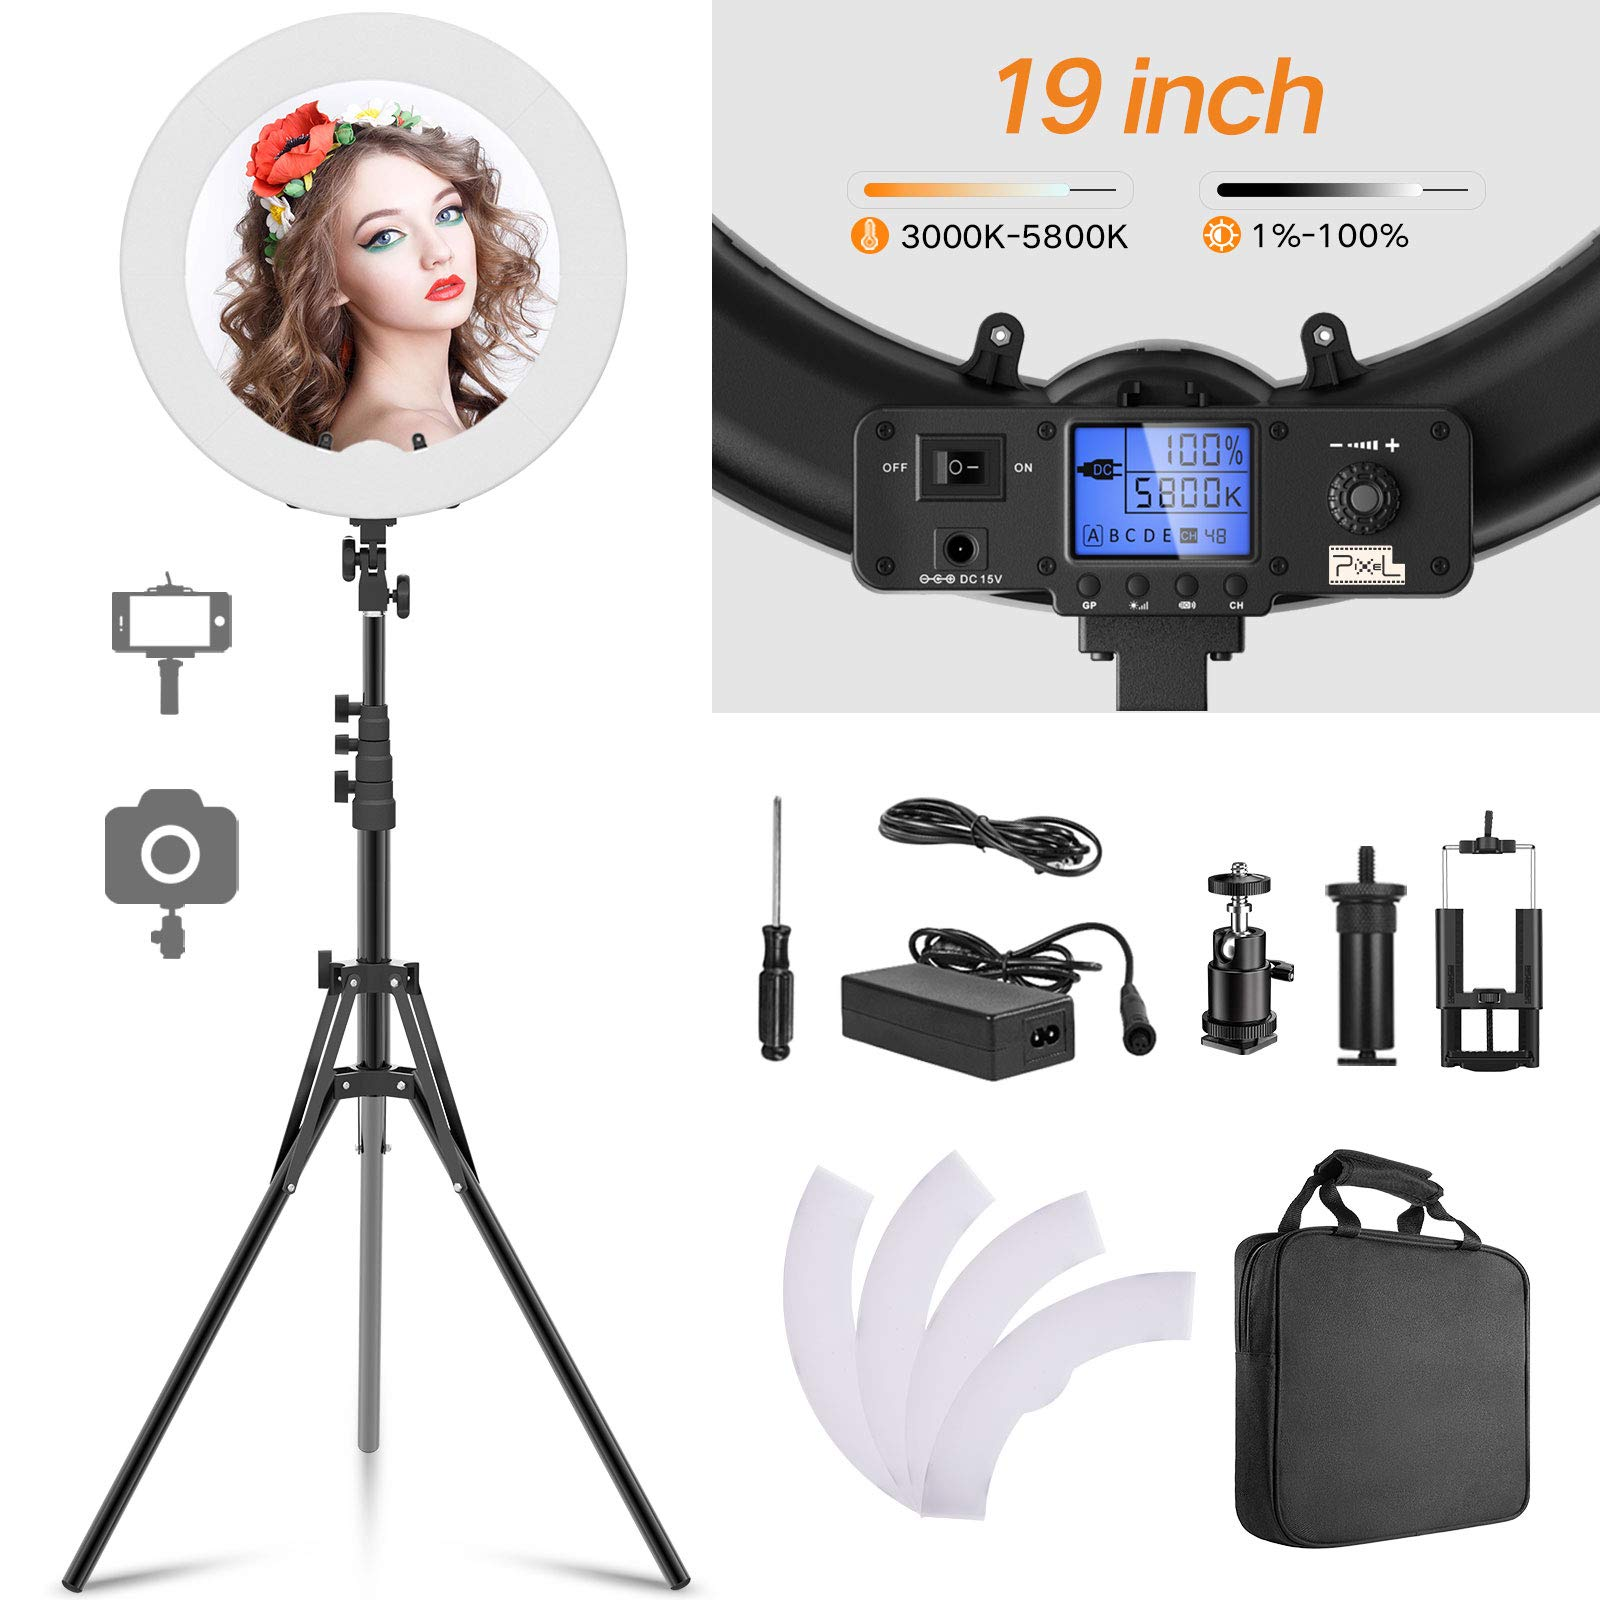 PIXEL 19inch Ring Light Kit With Tripod Stand, 55W Bi-Color 3000-5800K Dimmable LED Lighting Built-in Wireless Receiver,Carrying Bag For YouTube Video,Makeup,Vlog, Photography,Self-Portrait Shooting